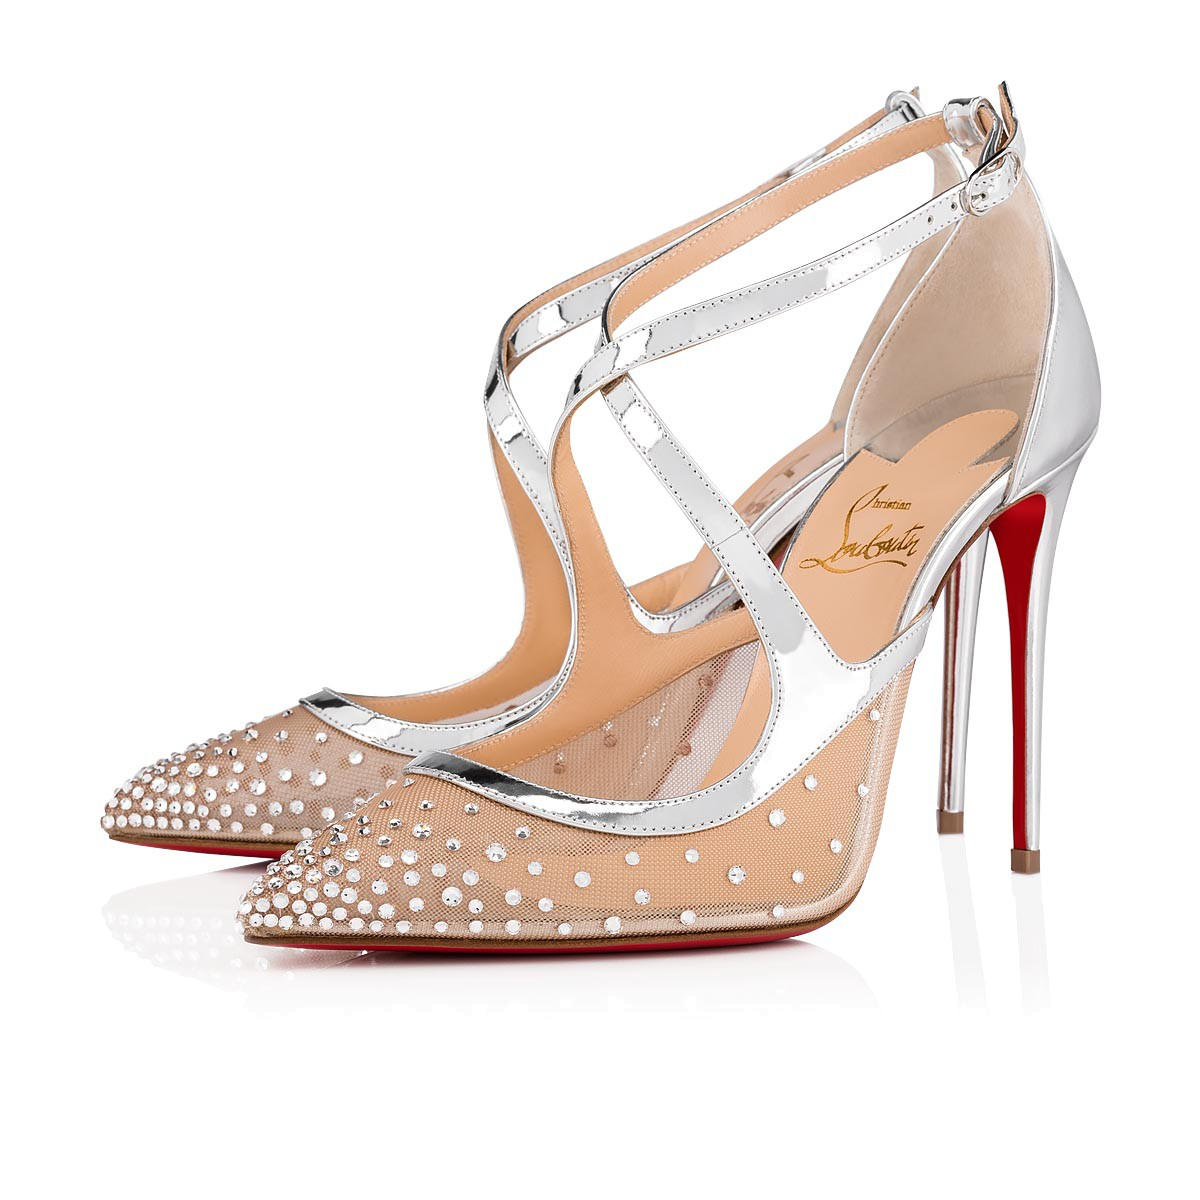 884938acf939 Twistissima Strass 100 Version Silver Dentelle - Women Shoes ...